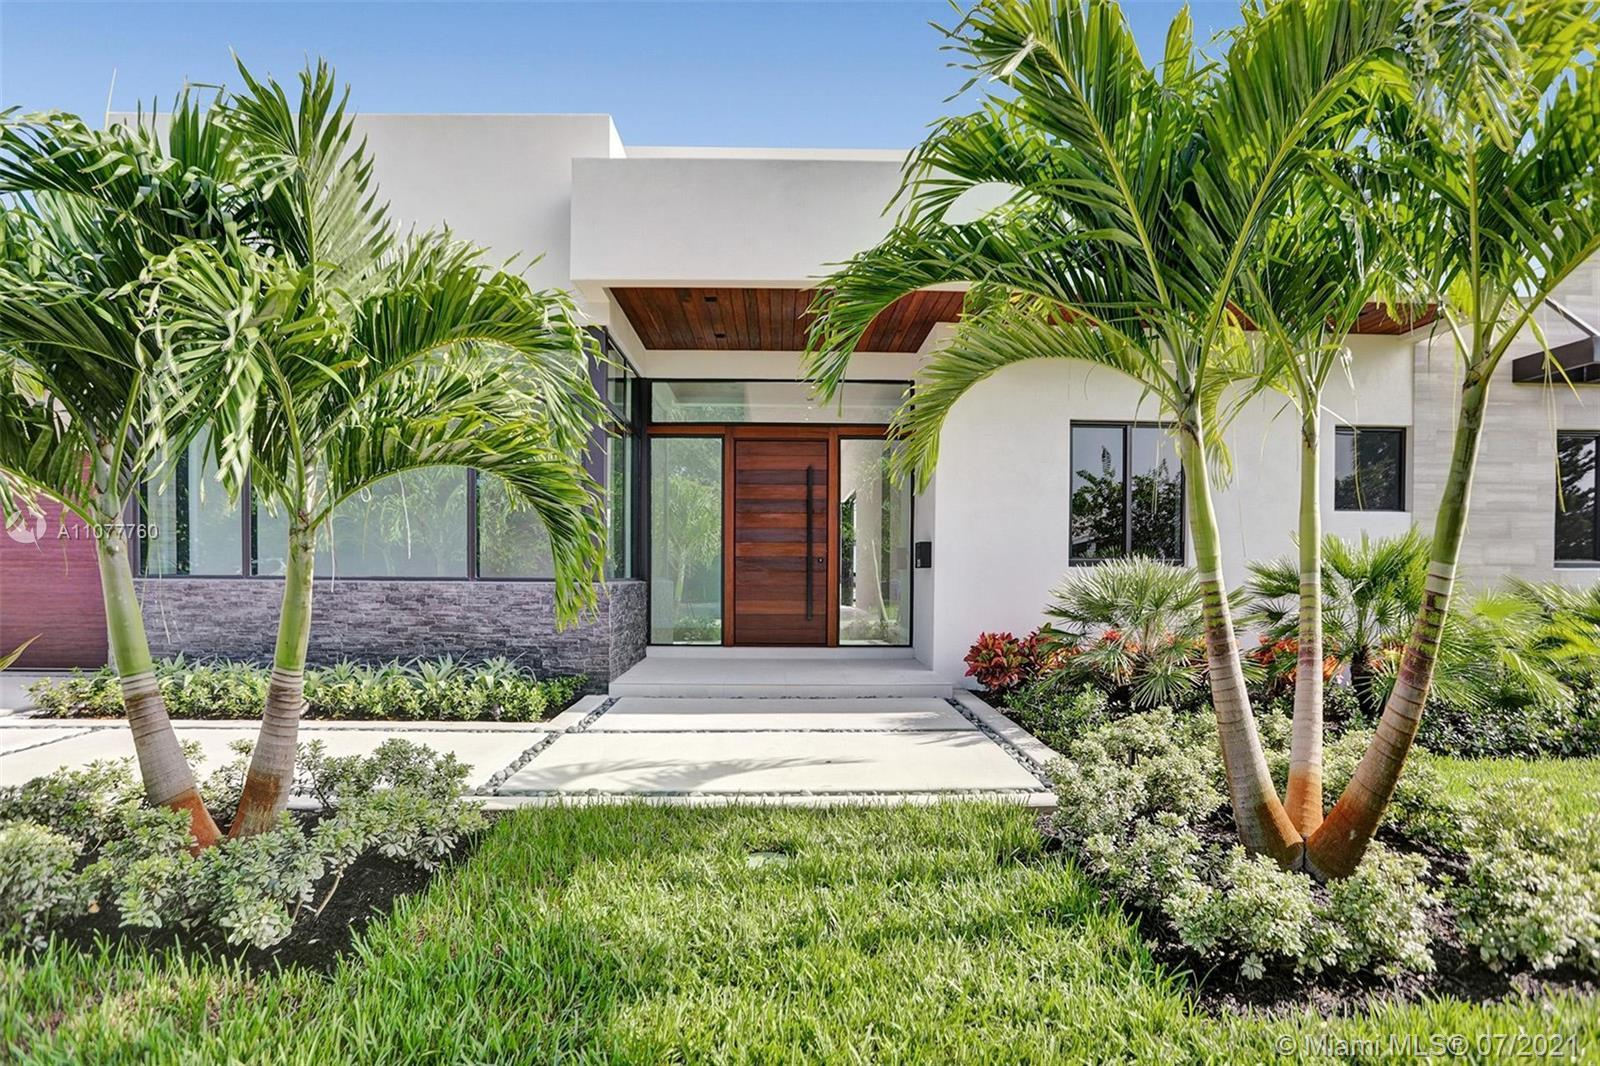 100 FEET ON THE WATER IN CORAL RIDGE! Architecture designed by Steve Brandt, Design includes a 4 bed